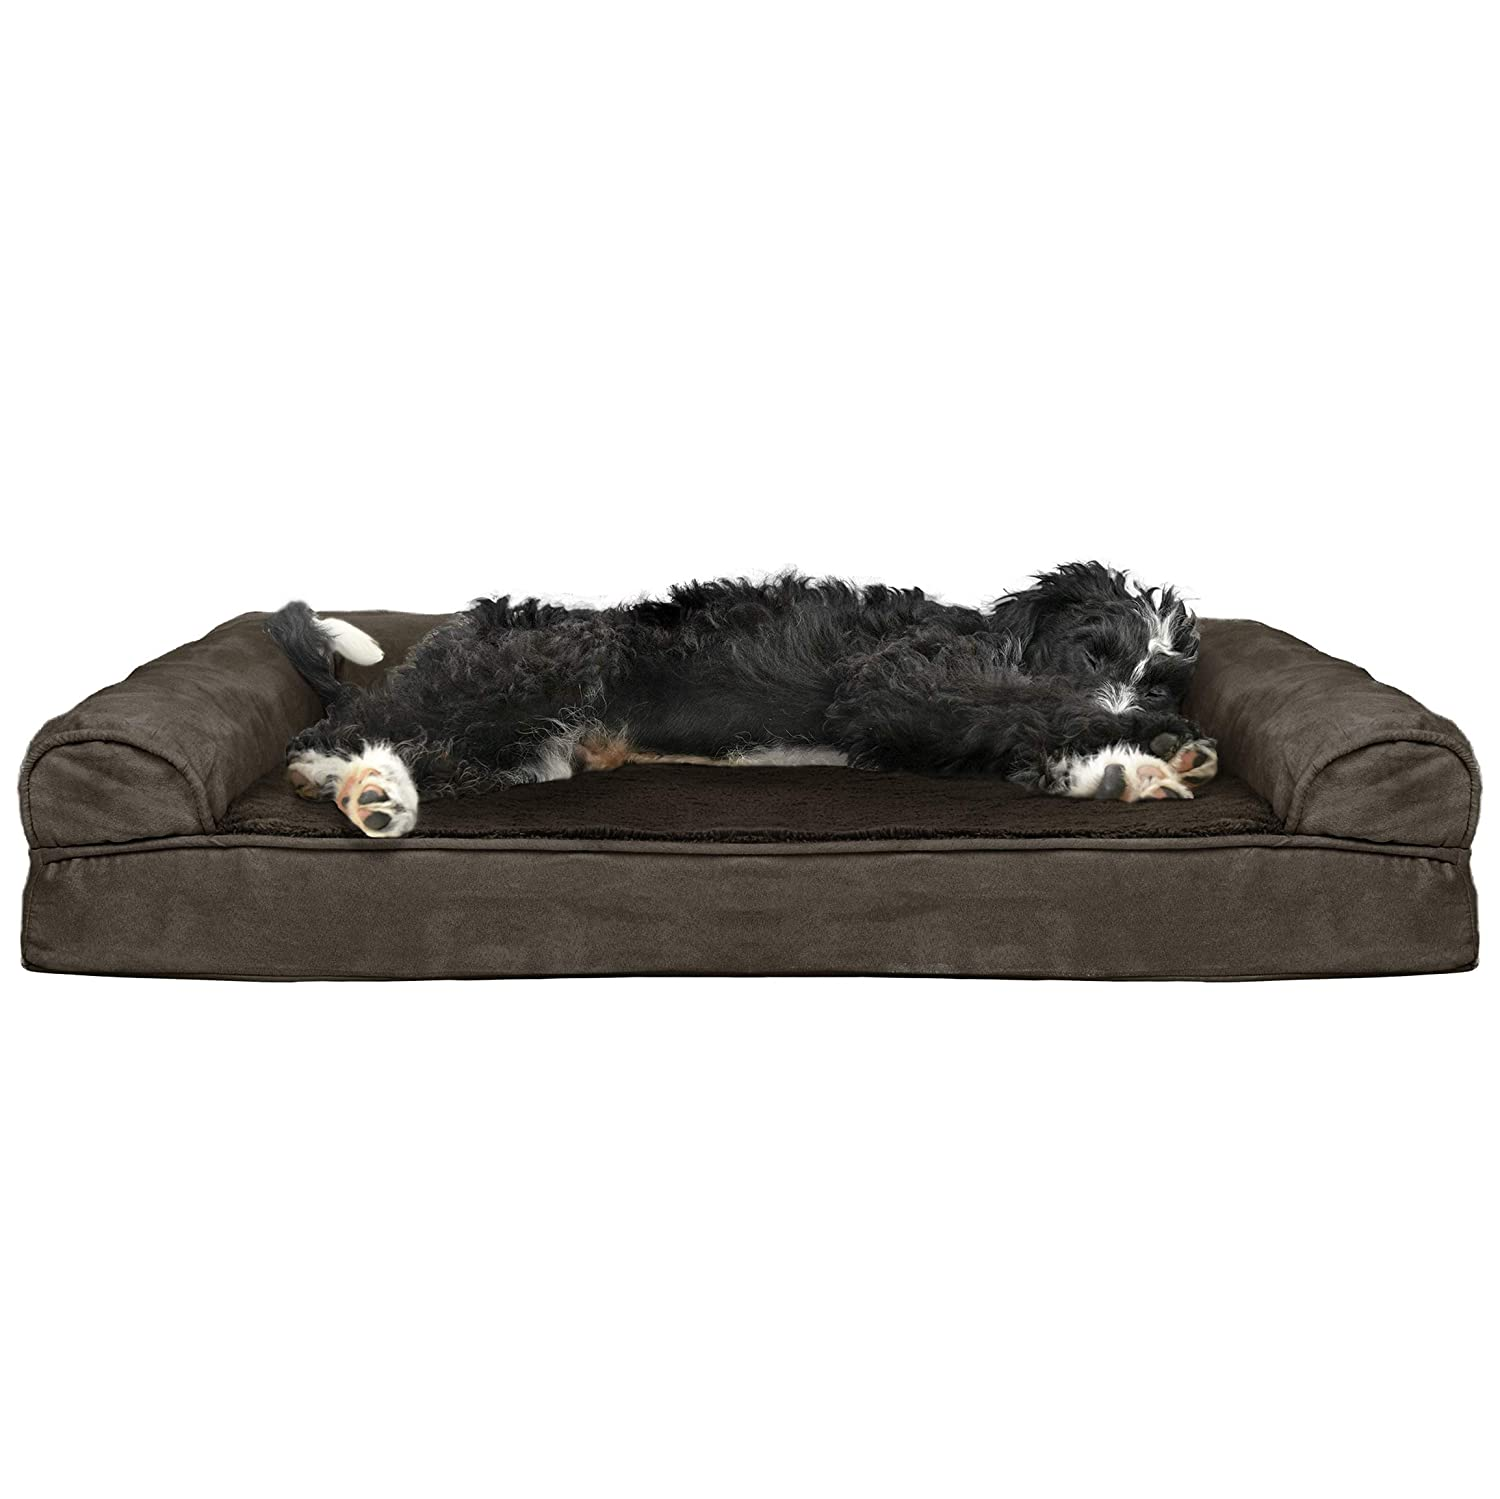 Furhaven Pet Dog Bed   Cooling Gel Memory Foam Orthopedic Ultra Plush Sofa-Style Couch Pet Bed for Dogs & Cats, Espresso, Large